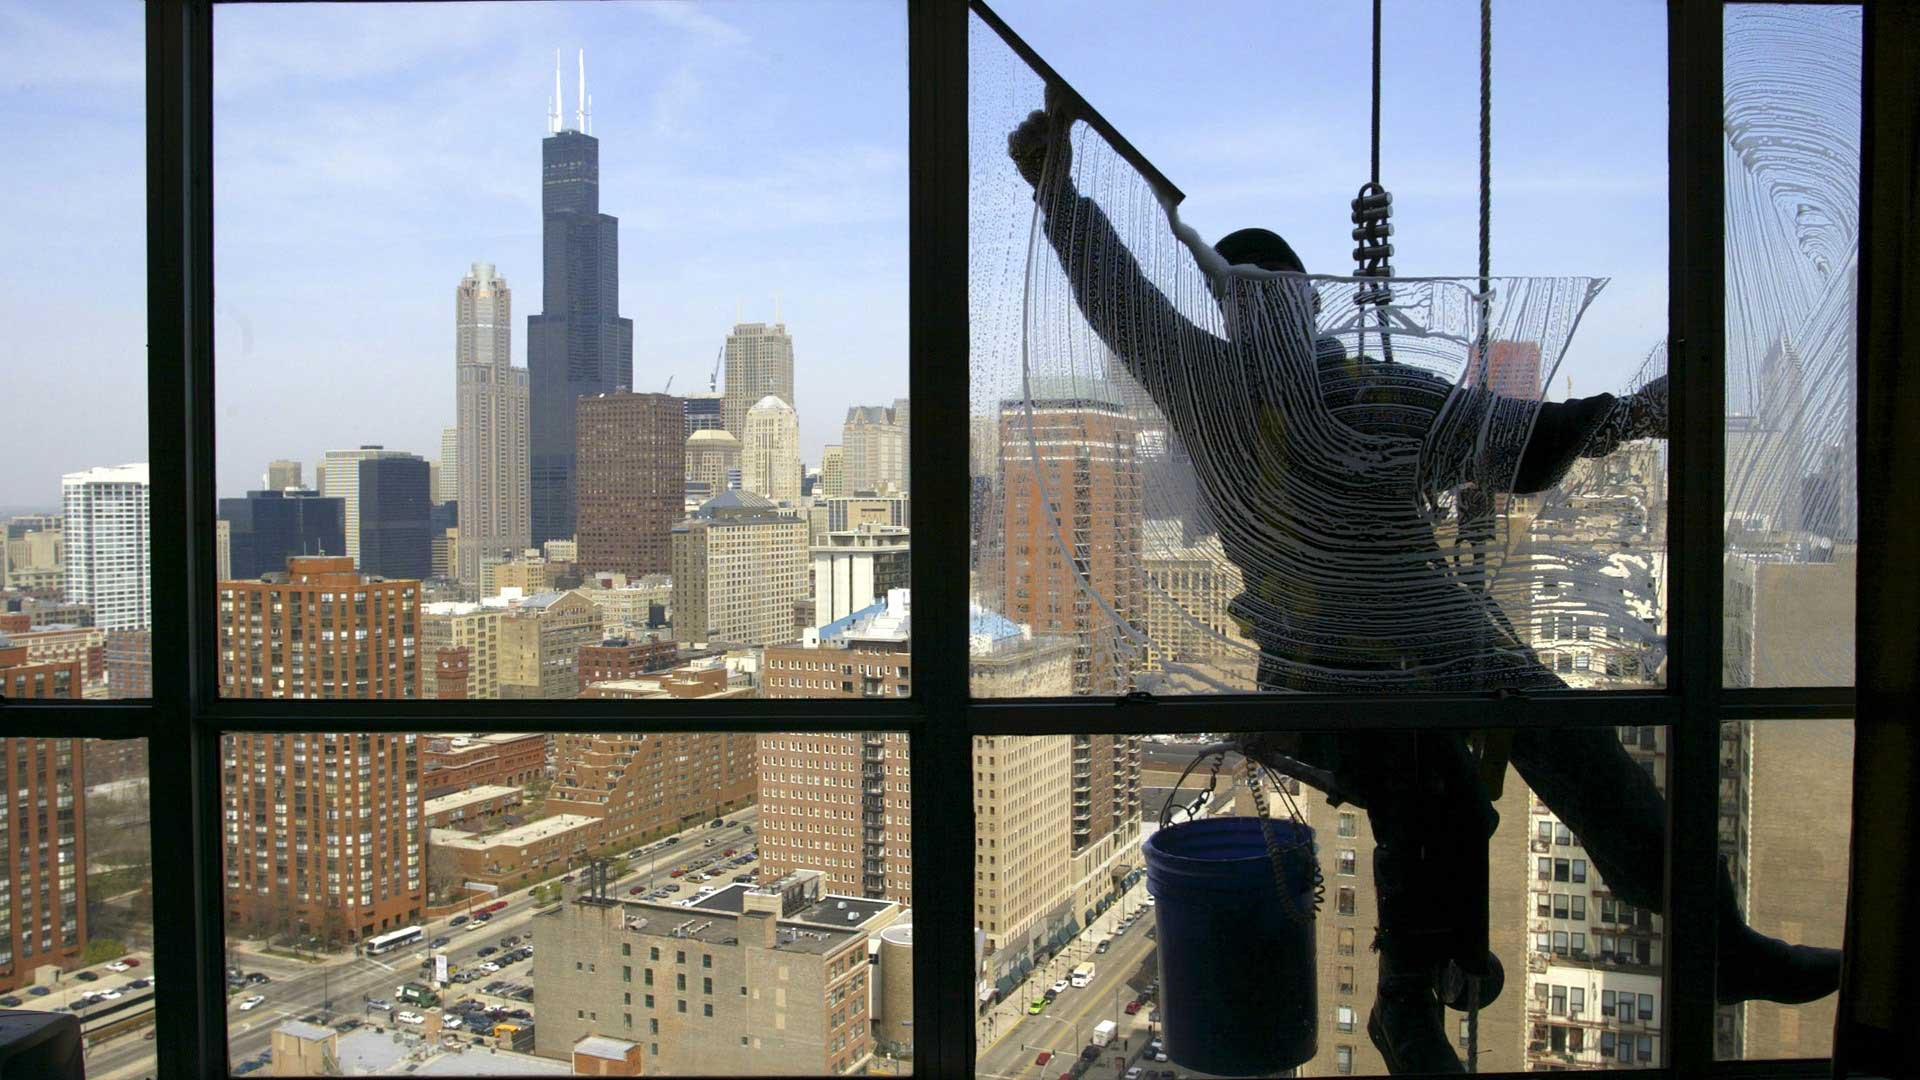 window-cleaning-chicago-illinois-usa